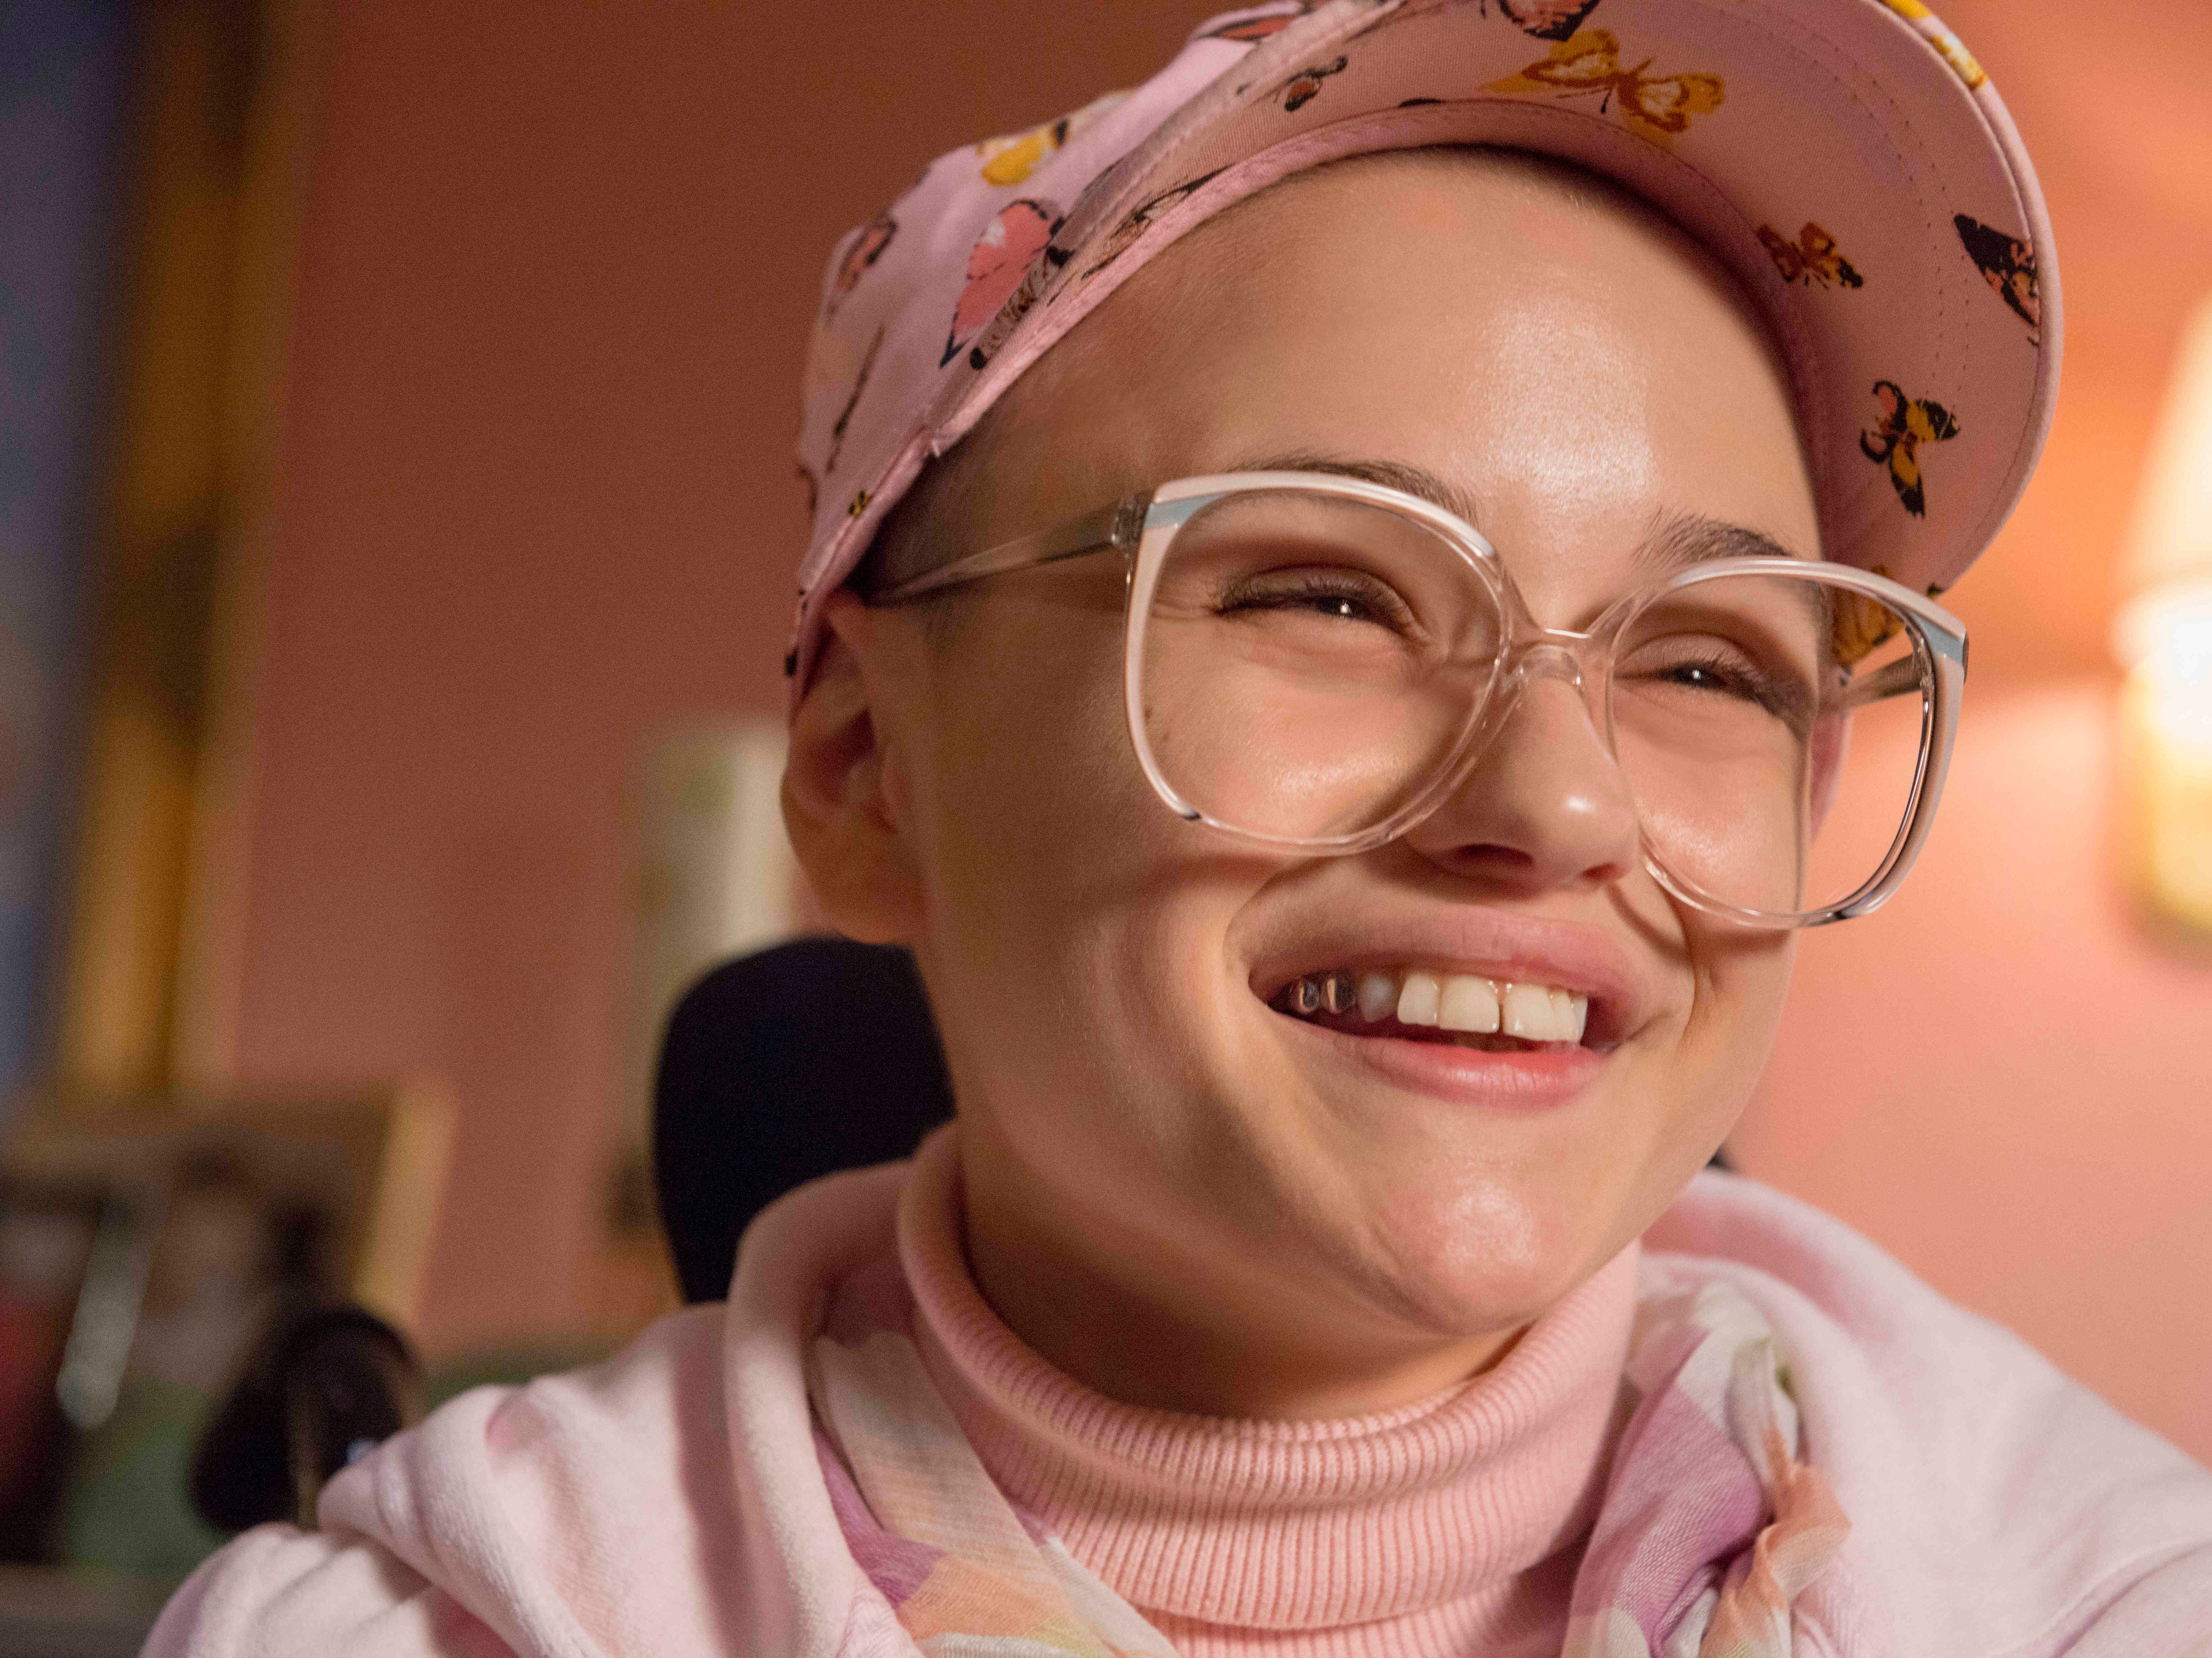 """The Act""  "" --  Gypsy Rose Blanchard (Joey King) shown."